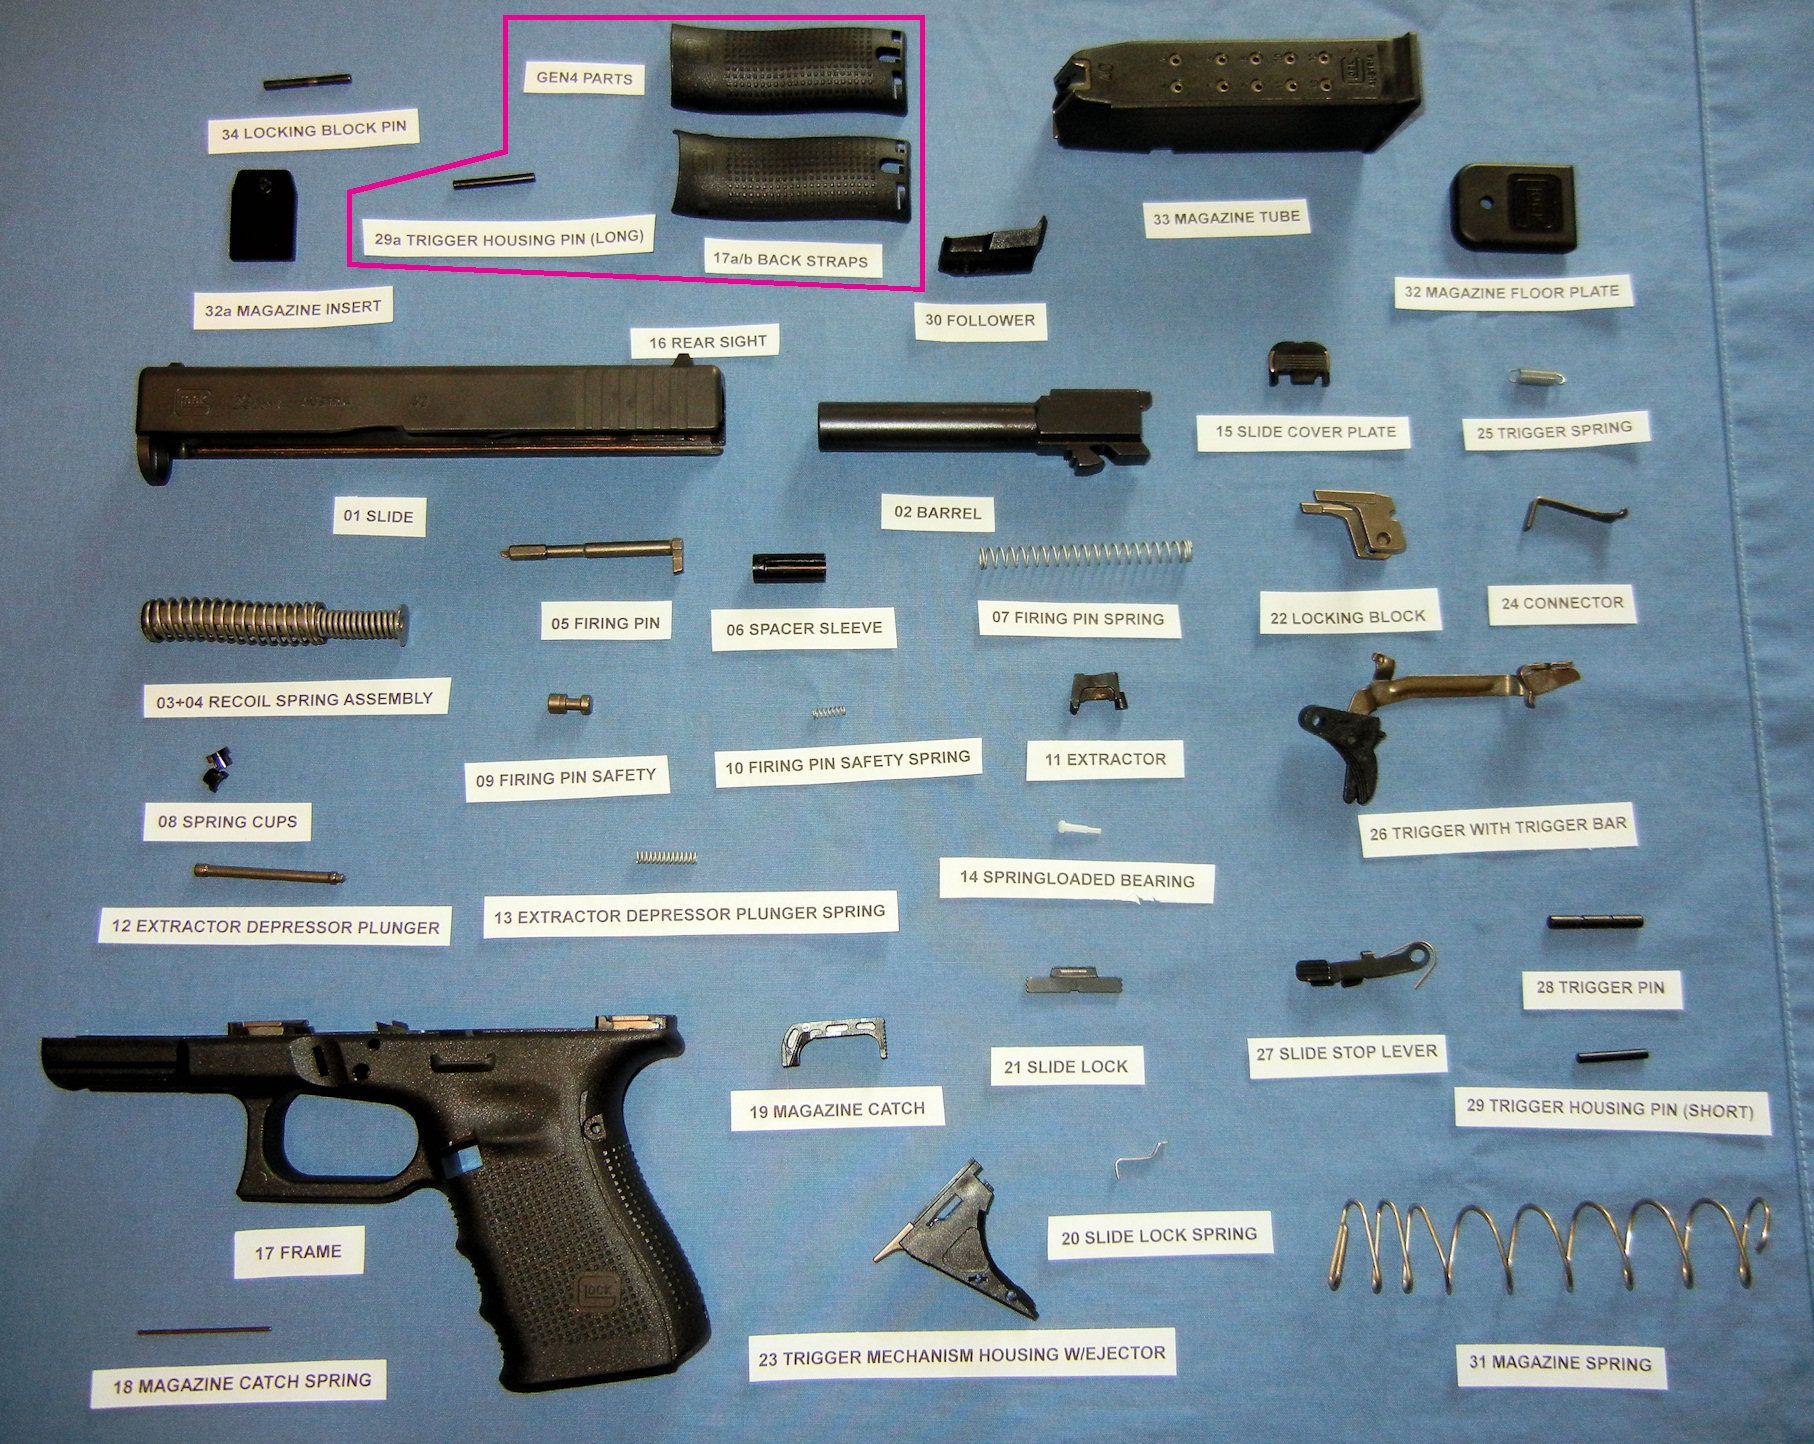 A Glock Series Pistol labeled and broken down into its 34 parts ...